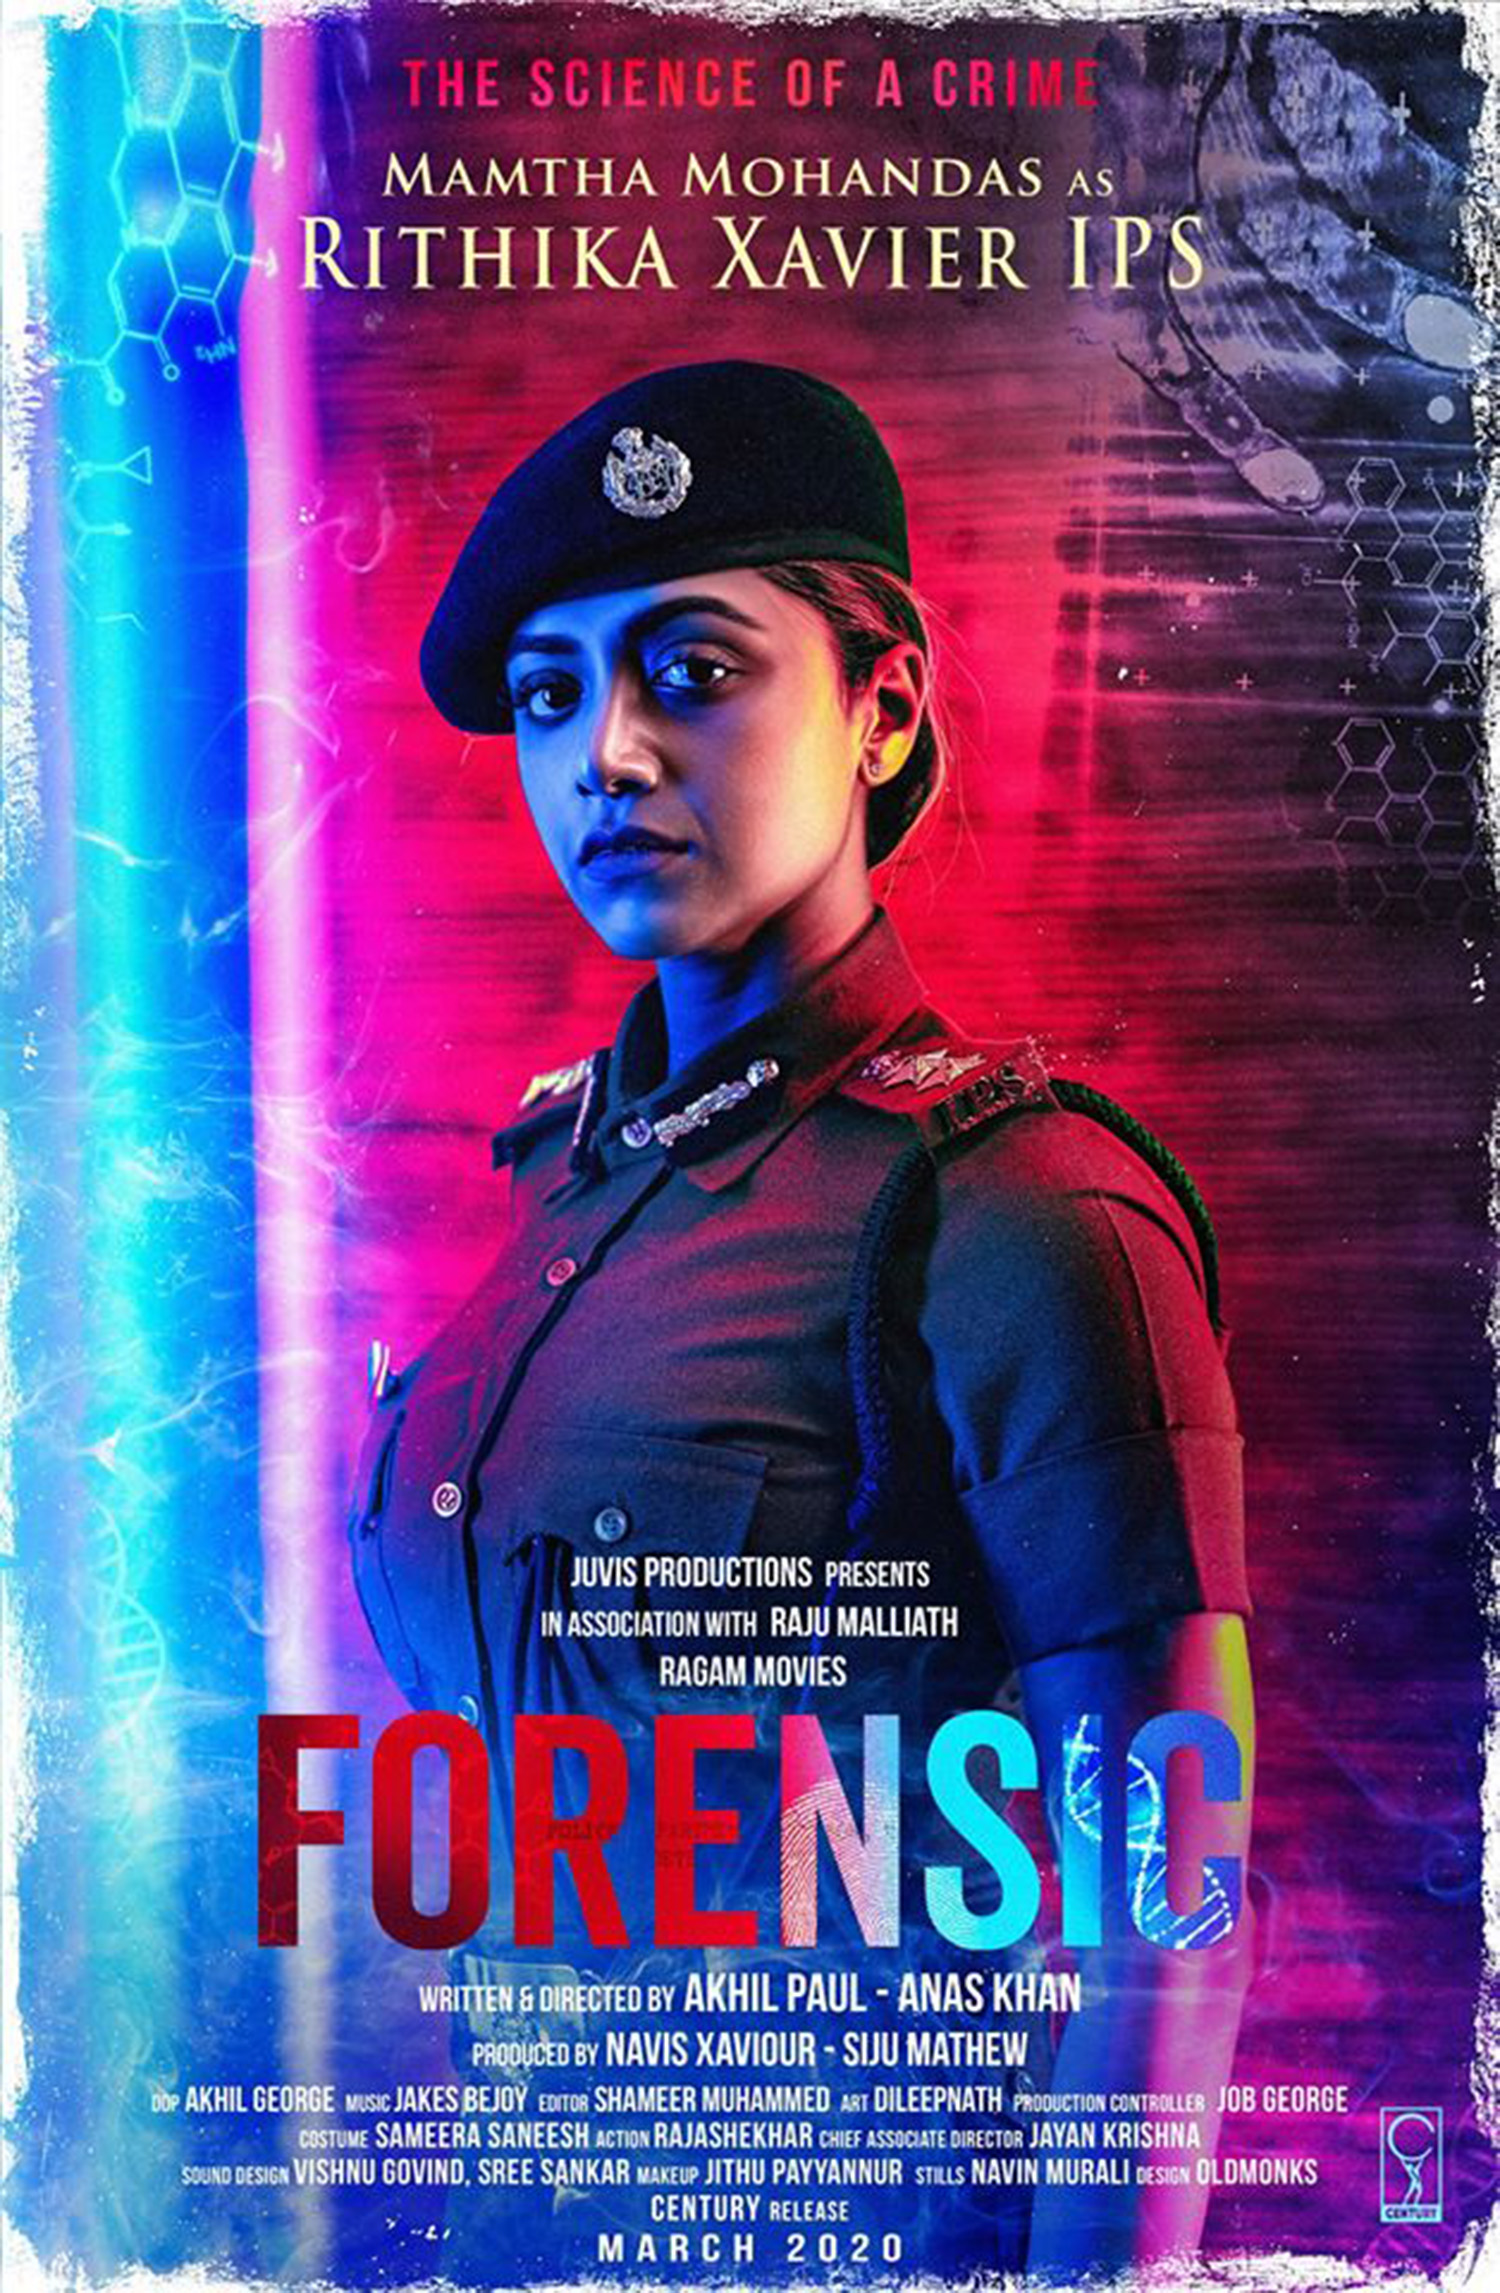 actress mamta mohandas,mamta mohandas in Forensic,mamta mohandas character poster Forensic,actress mamta mohandas new movie,Forensic movie updates,tovino thomas,tovino thomas mamta mohandas movie,Forensic new malayalam film